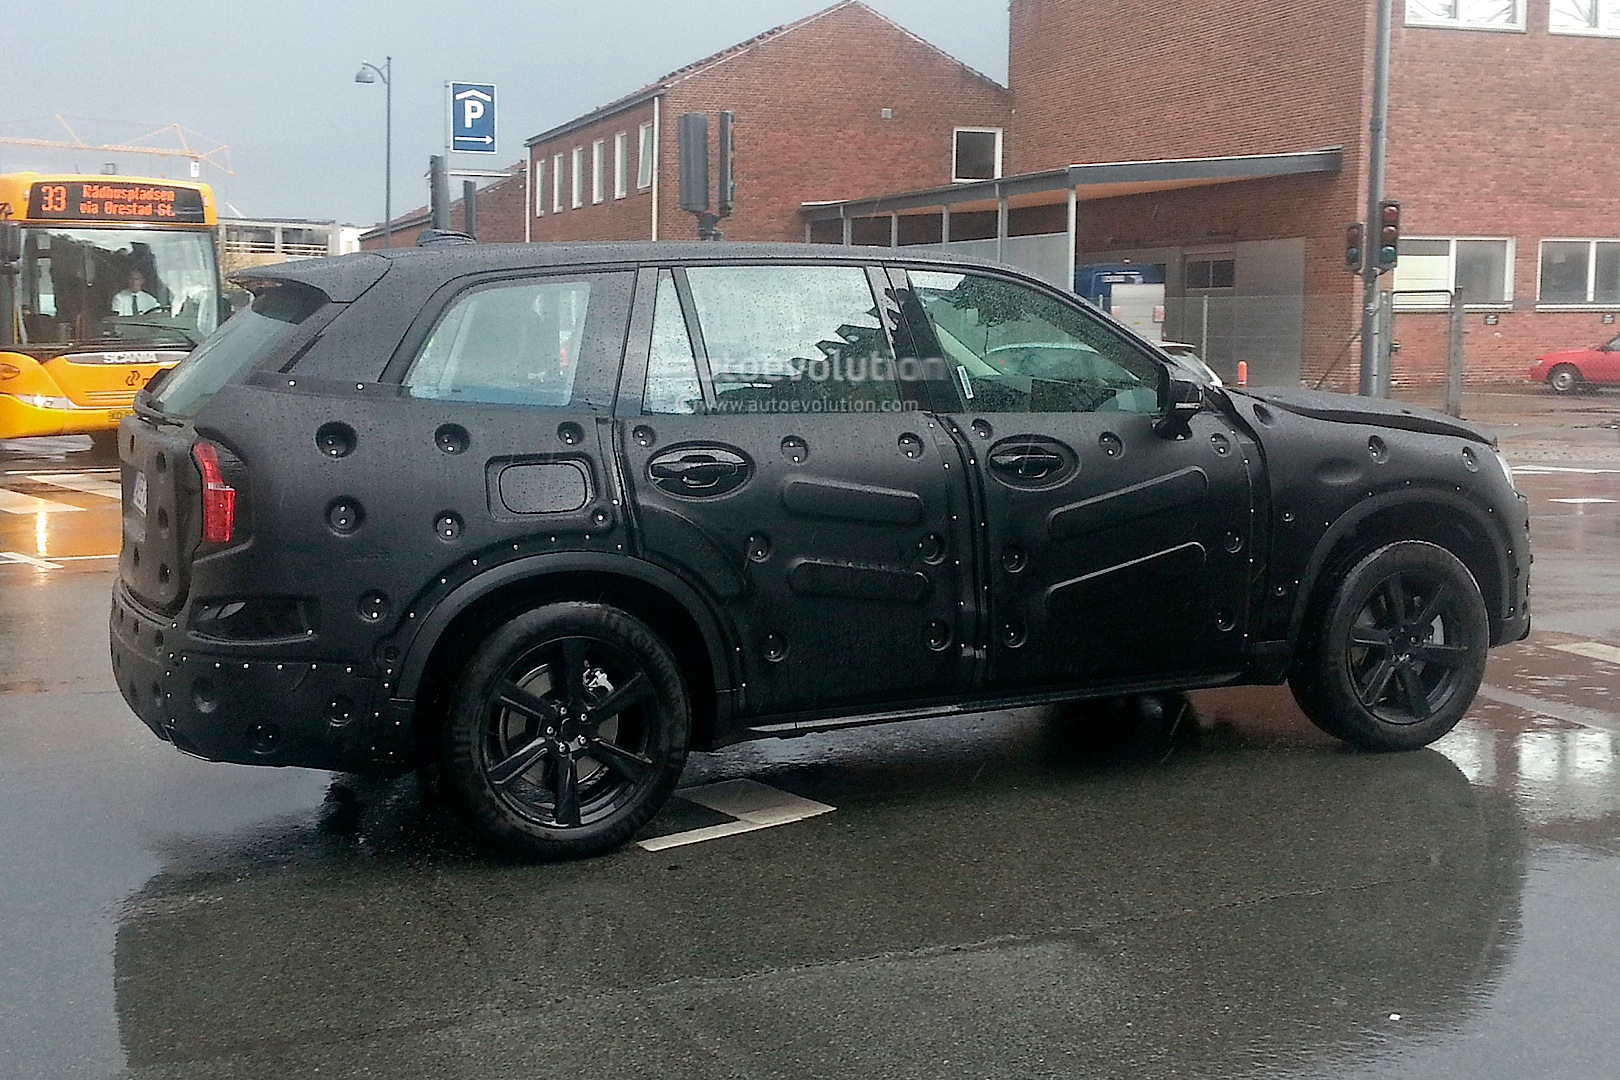 Second-Generation Volvo XC90 Spied in Detail, Getting Ready to Launch in 2015 - autoevolution